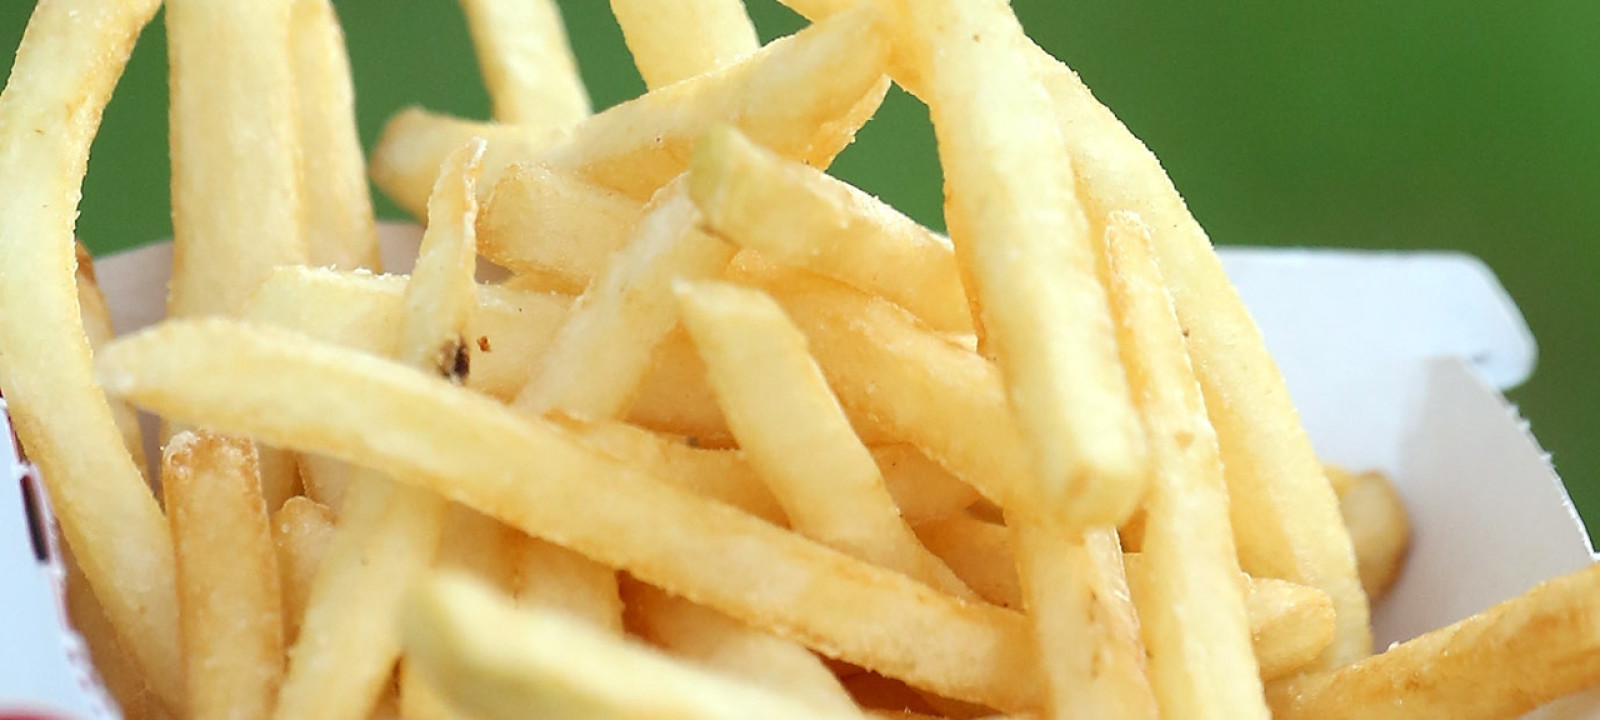 Fries or chips? (Pic: Matt Cardy/Getty Images)